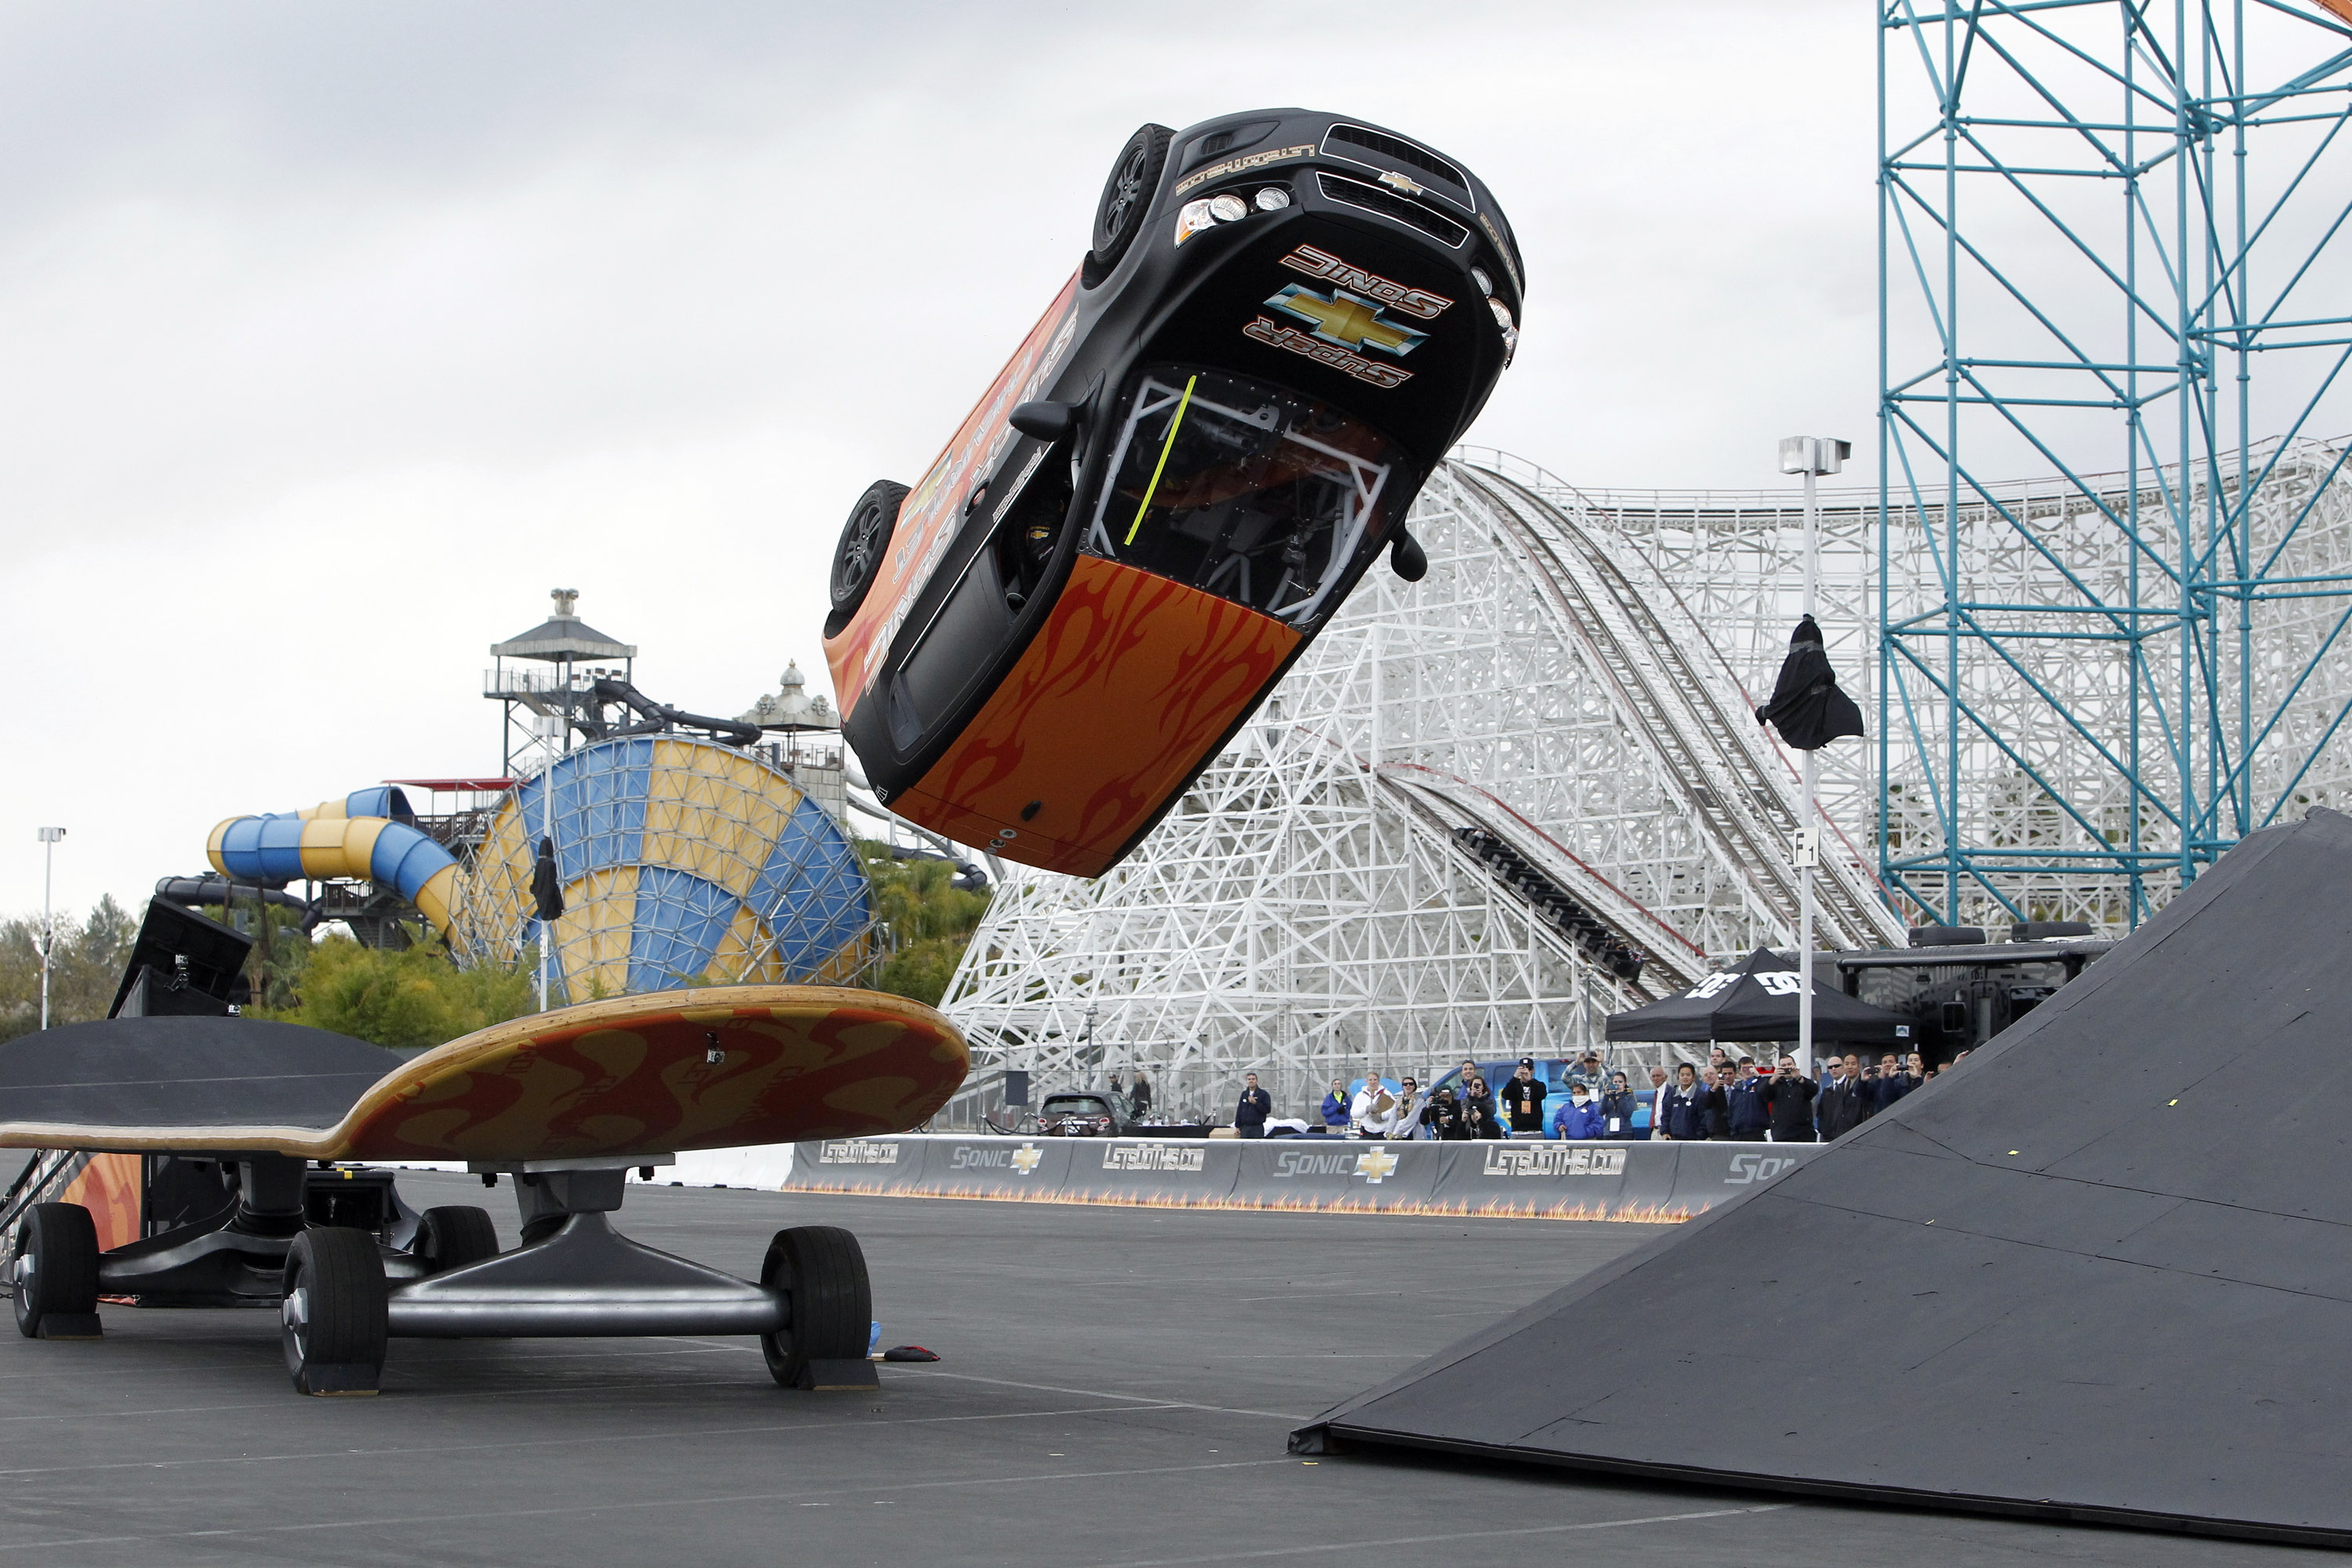 Mtv Reality And Action Sports Star Rob Dyrdek Prepares His 2017 Chevy Sonic For A Kick Flip 360 Degree Rotation In Mid Air That Is More Commonly